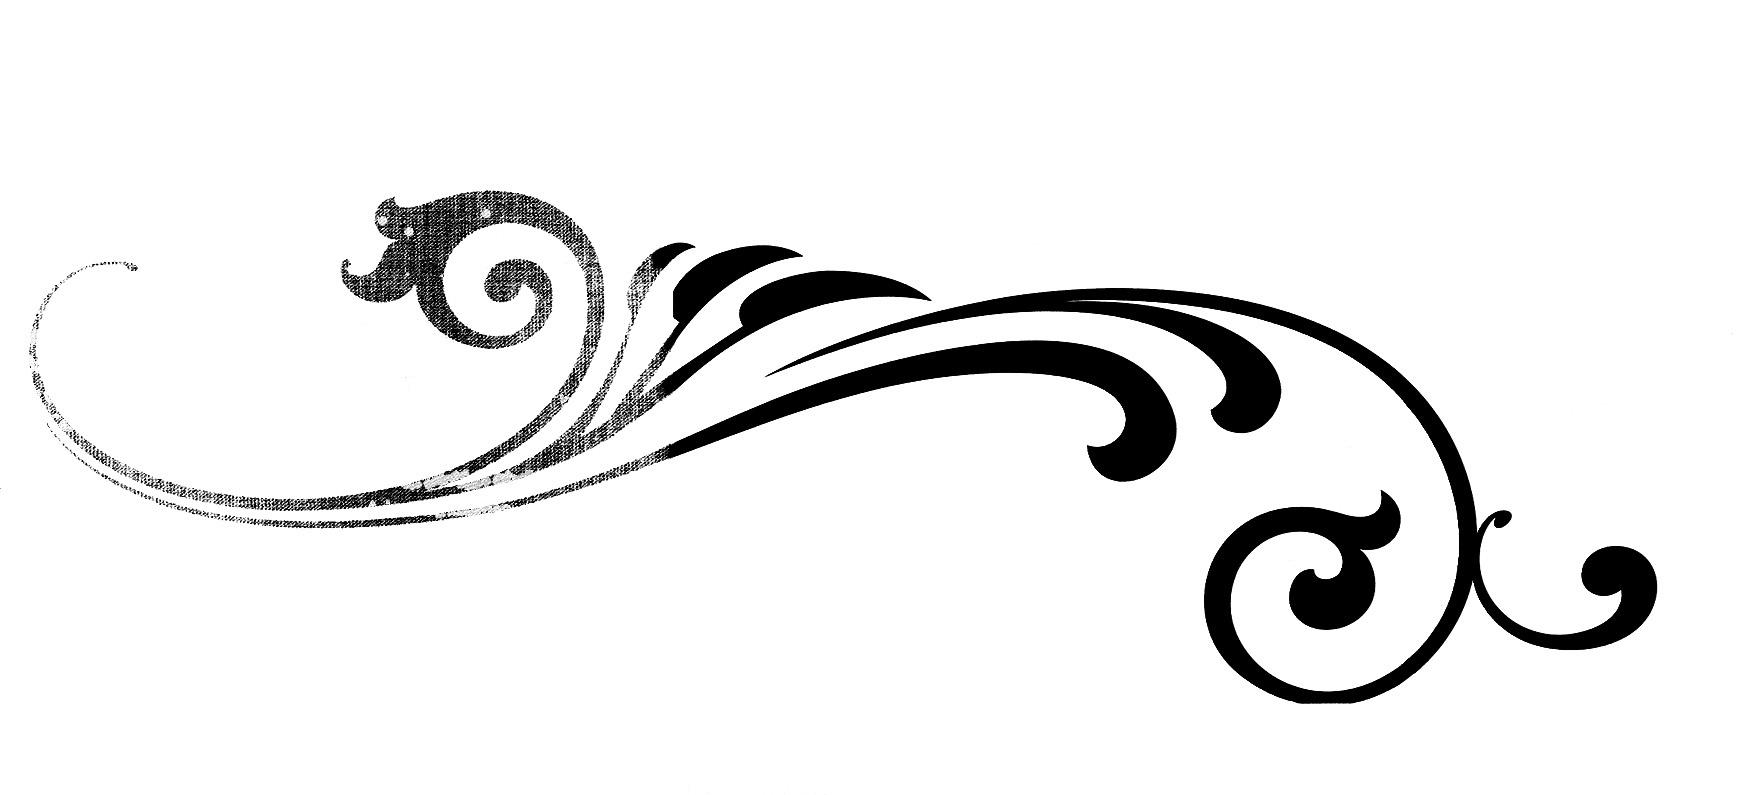 21 Fancy Flourish Free Cliparts That You Can Download To You Computer